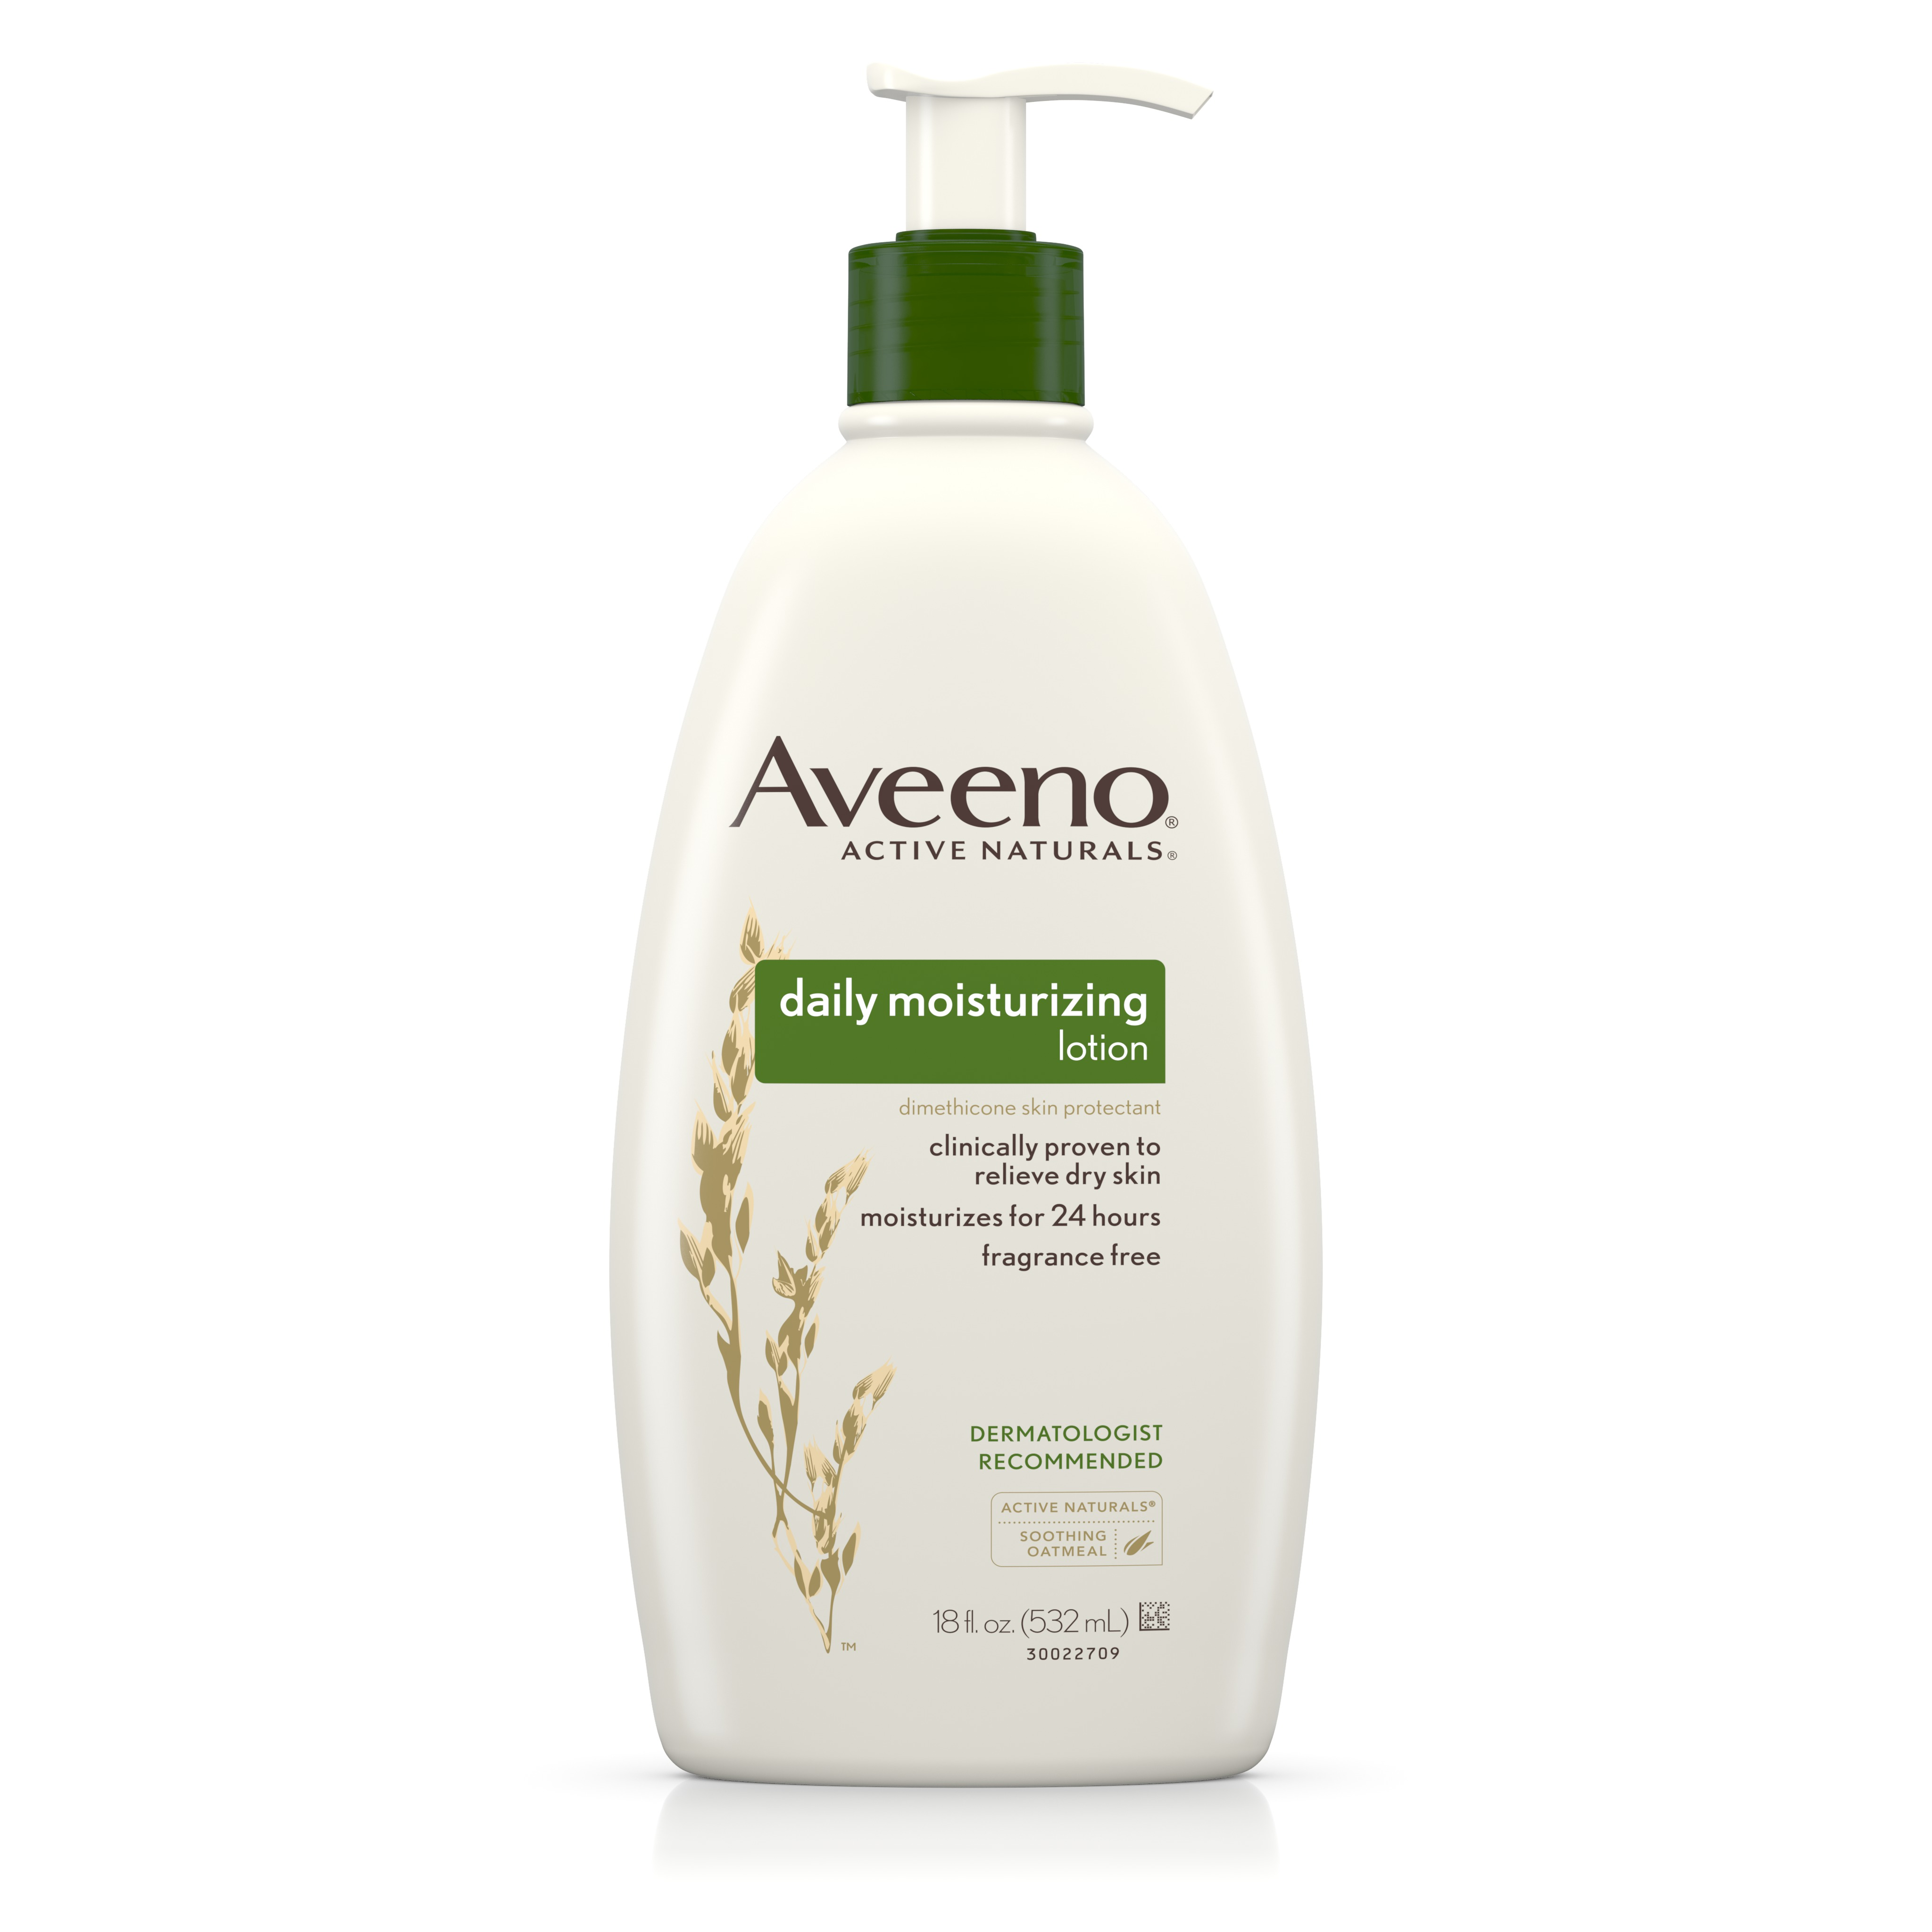 Aveeno Daily Moisturizing Lotion For Dry Skin, 18 Fl. Oz - Walmart.com